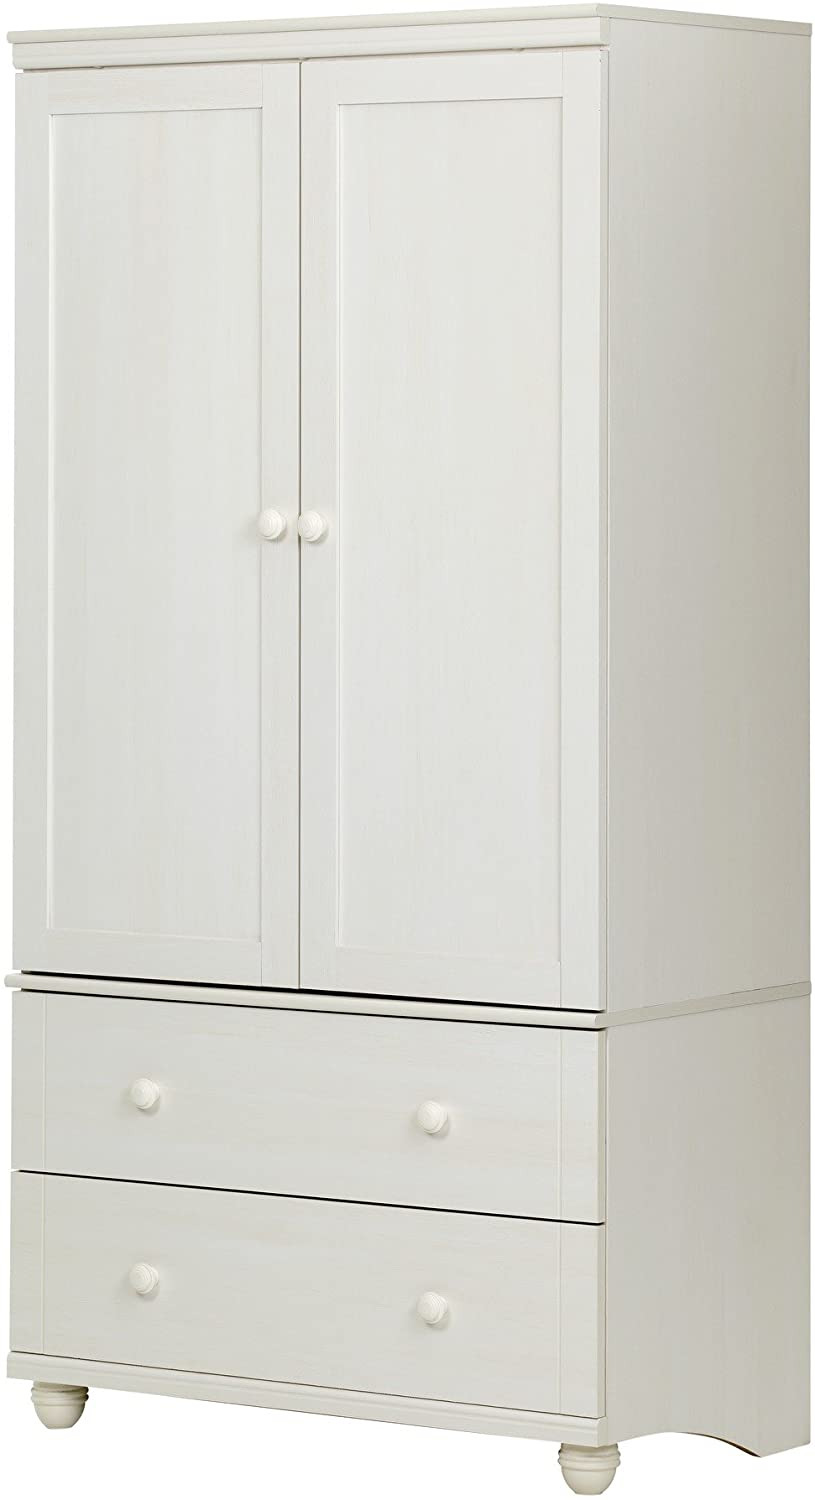 2 Door Storage Cabinet Lovely Amazon south Shore Hopedale Tall 2 Door Storage Cabinet